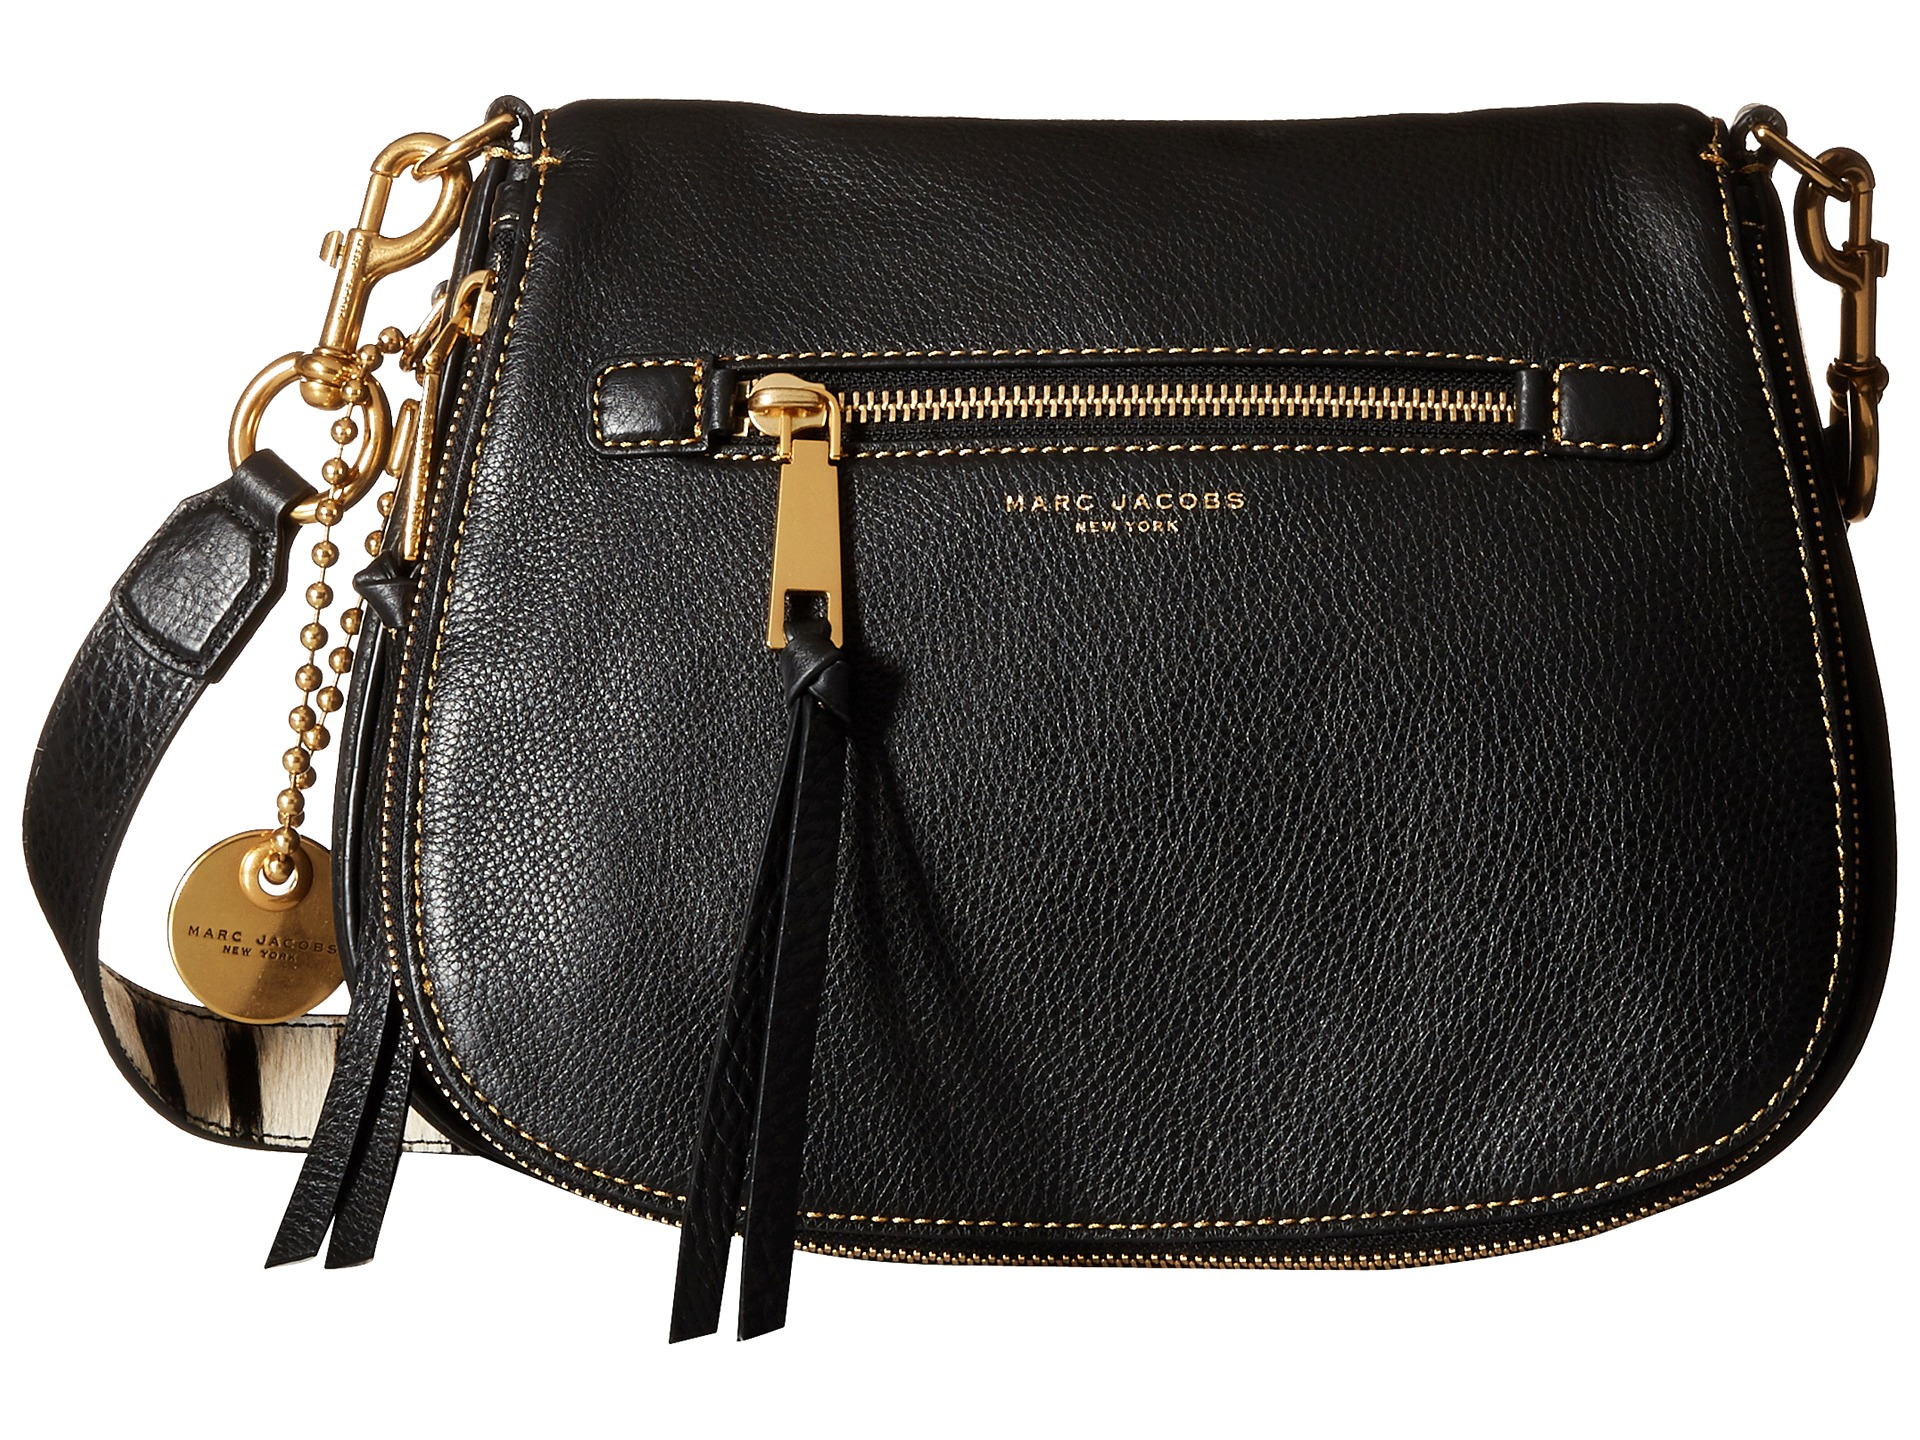 ae5a6d5f0 Marc Jacobs Recruit With Guitar Strap Saddle Bag in Black - Lyst